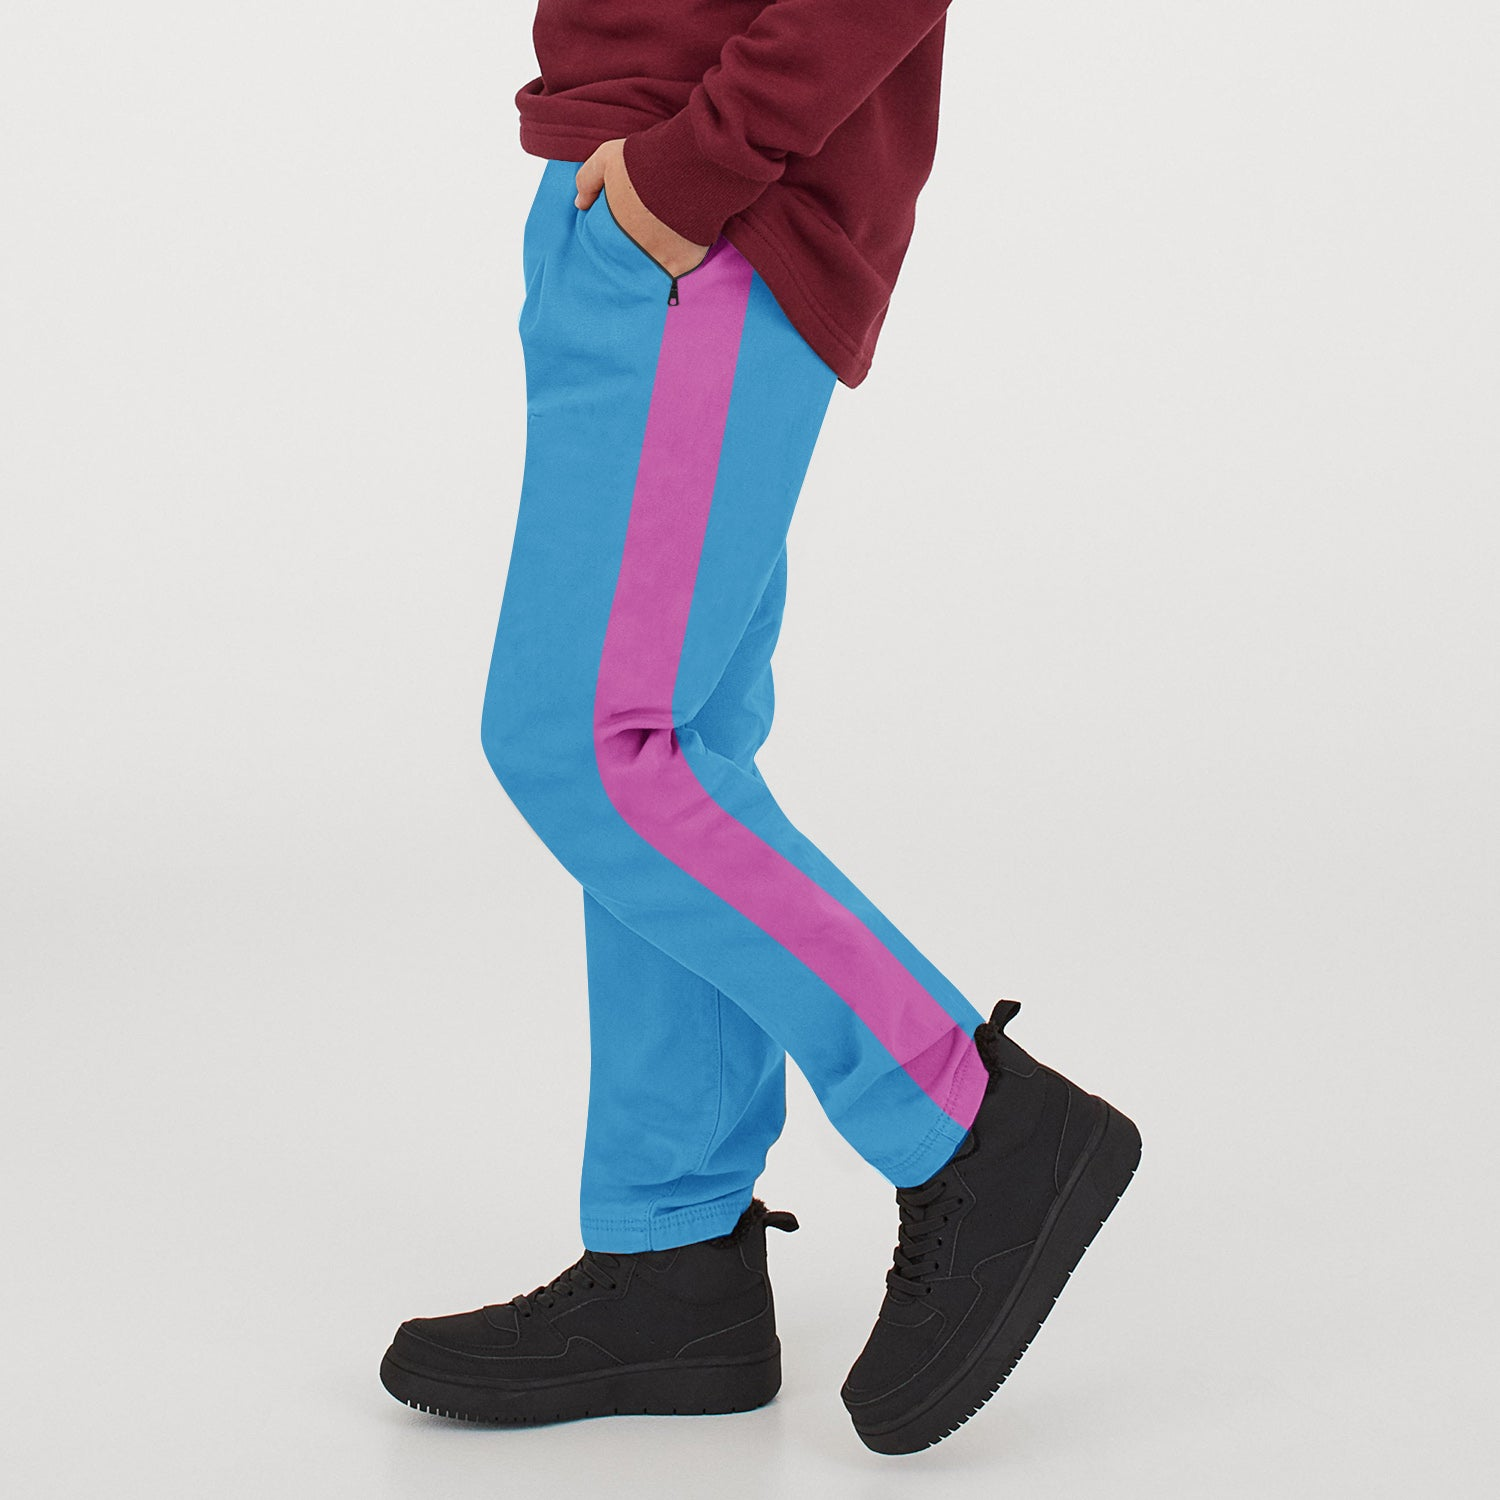 Tommy Hilfiger Both Season Trouser For Kids-Cyan with Magenta Stripe-BE12764